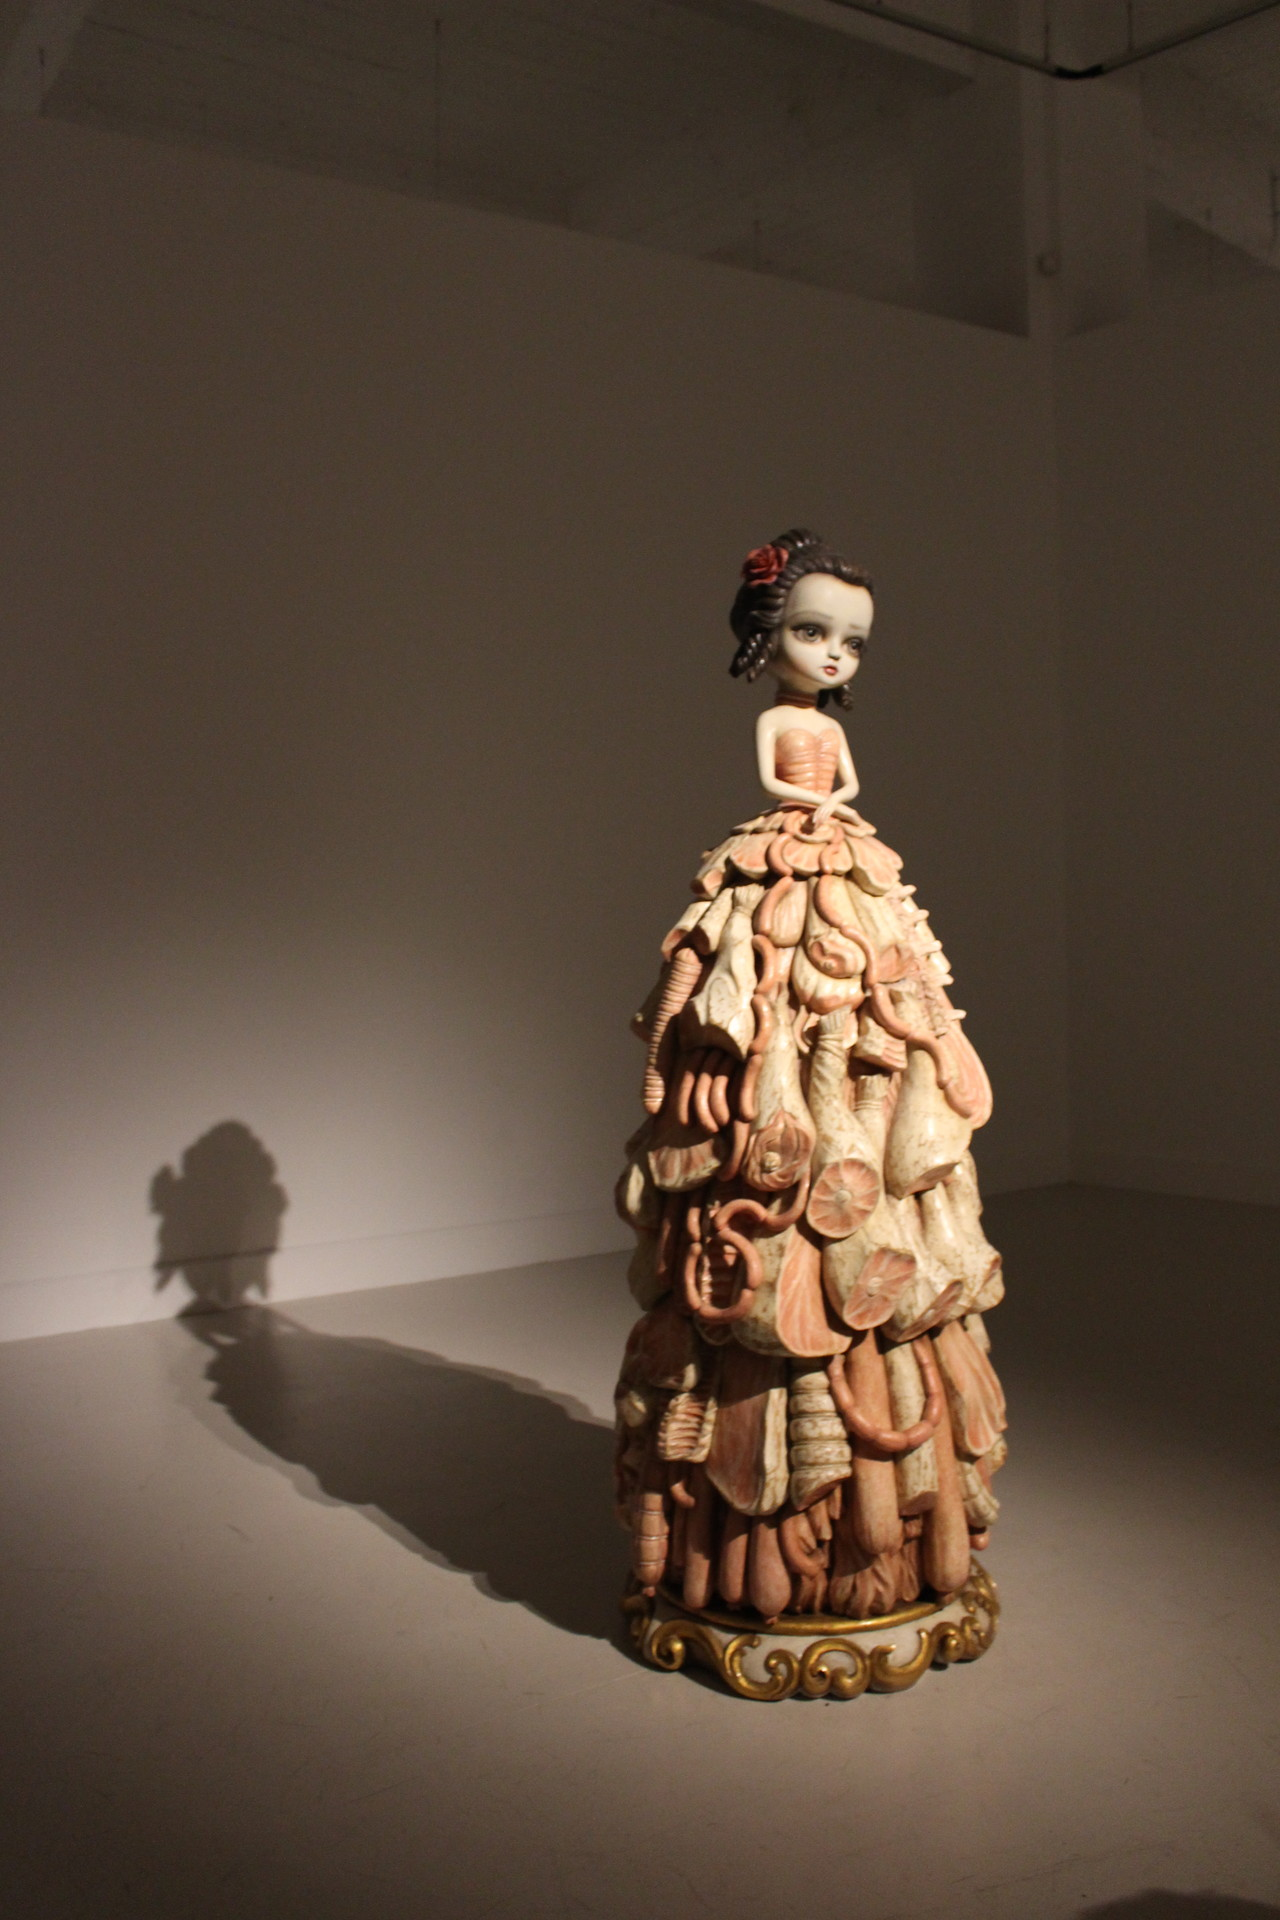 exposicion-mark-ryden-c-a-c-malaga-22add